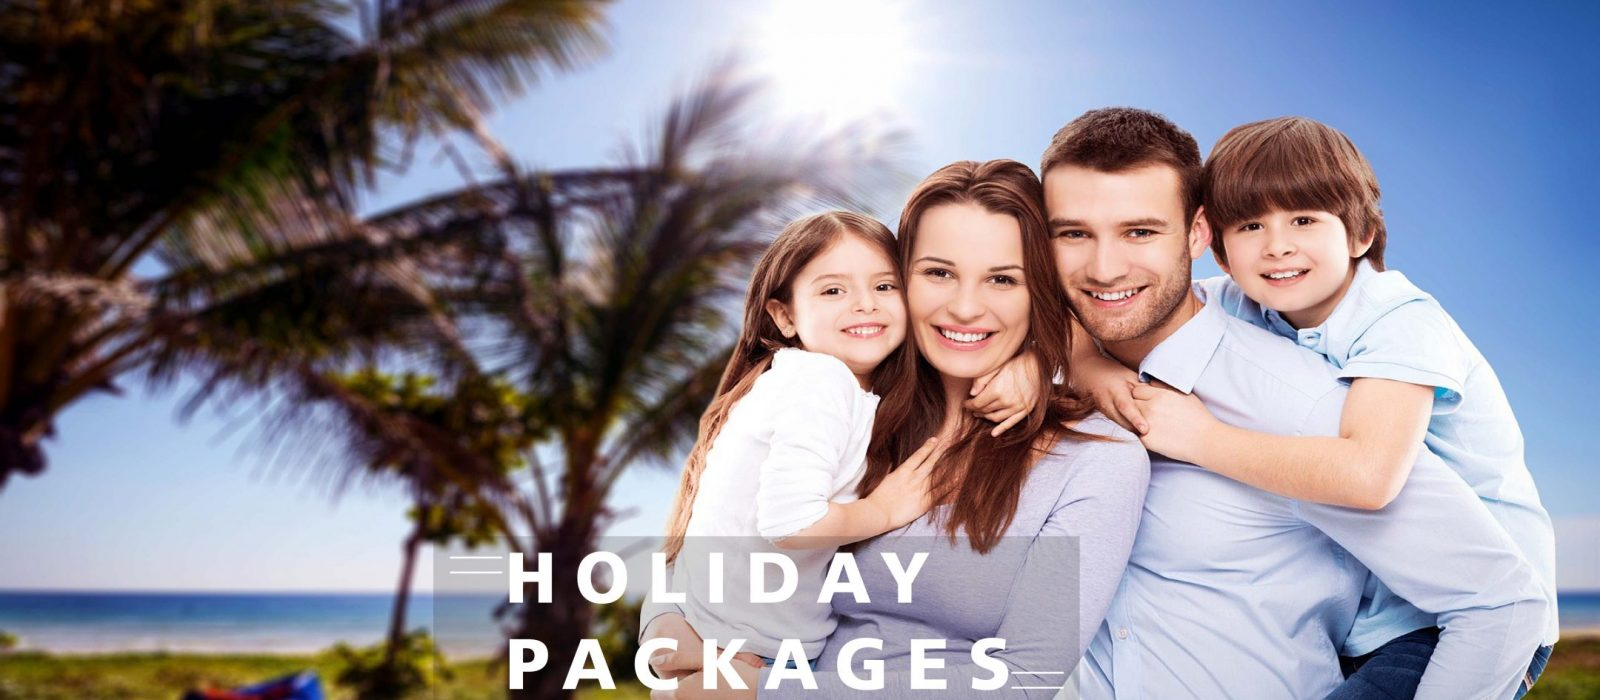 holiday packages-01